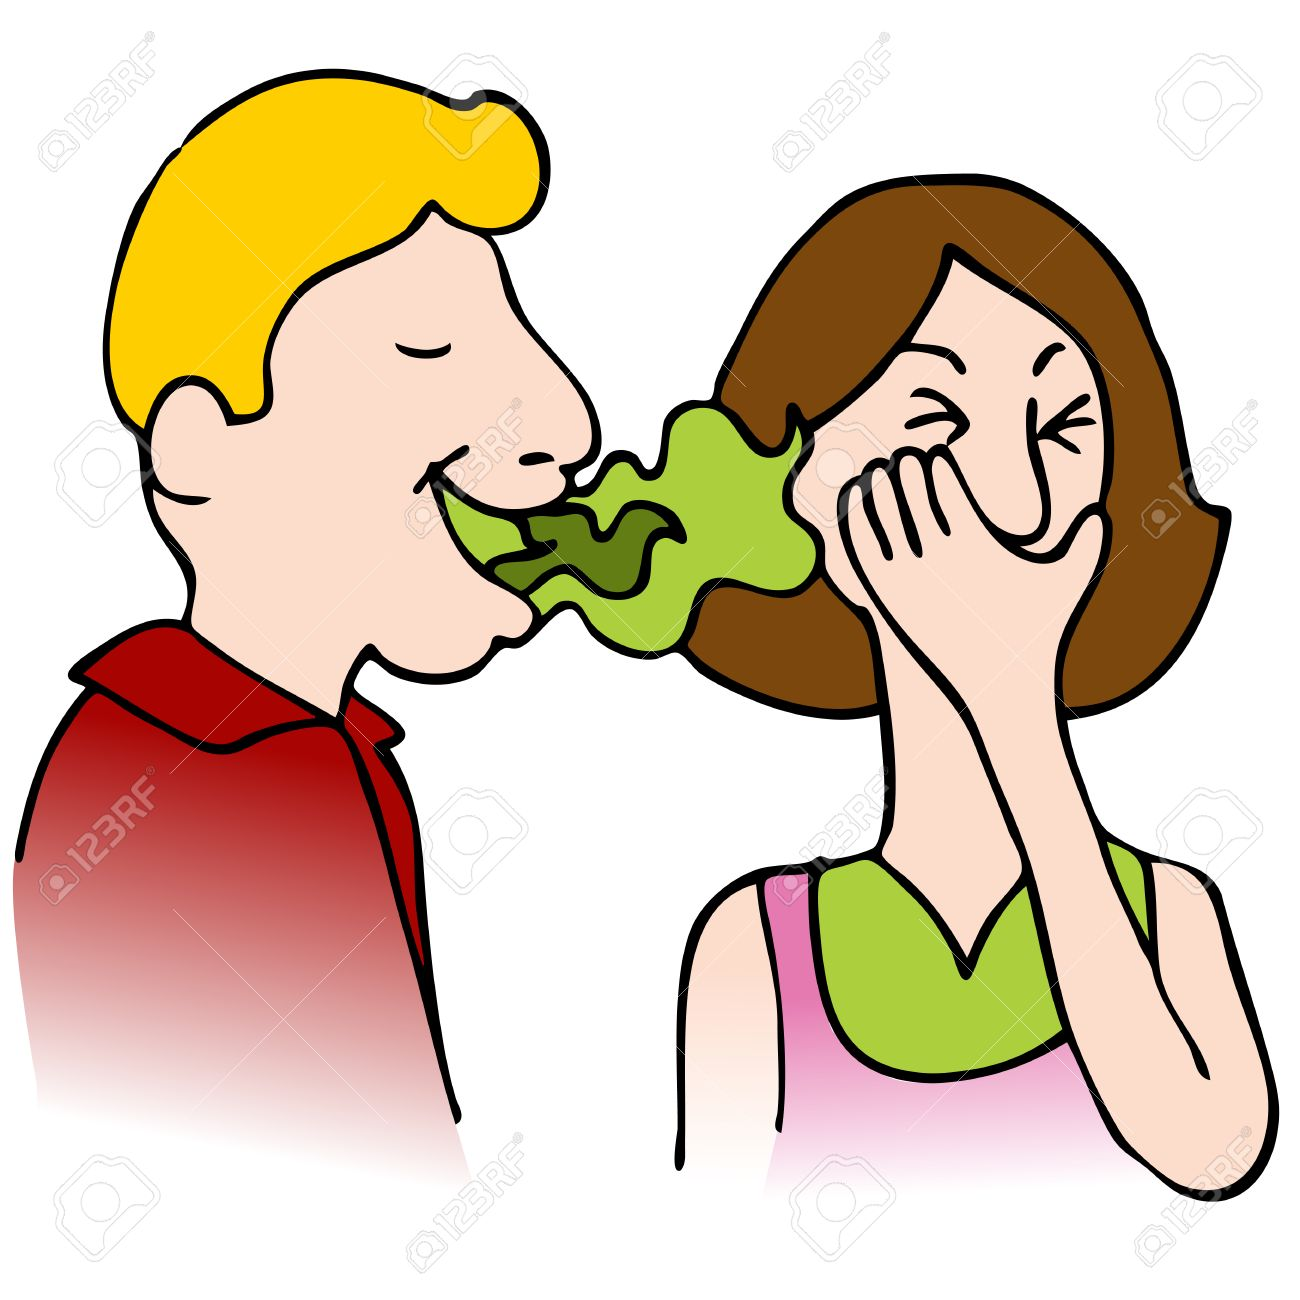 An image of a man with bad breath talking to a woman. Stock Vector - 9031654